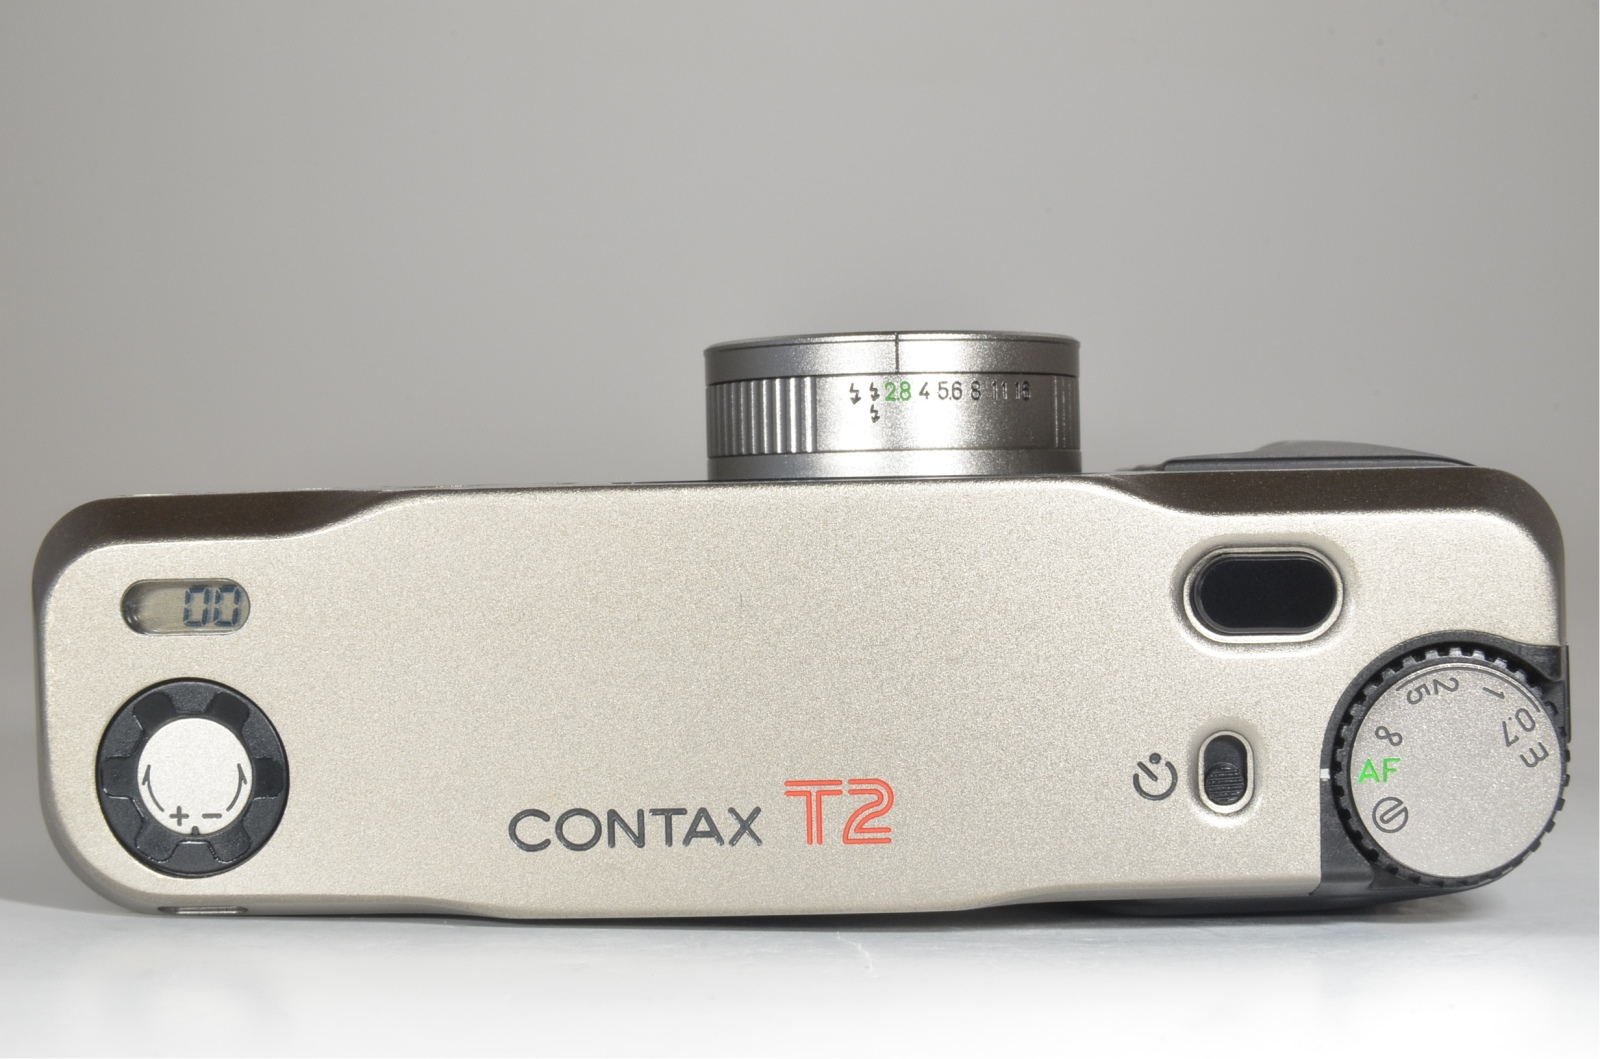 contax t2 titanium silver p&s 35mm film camera in boxed